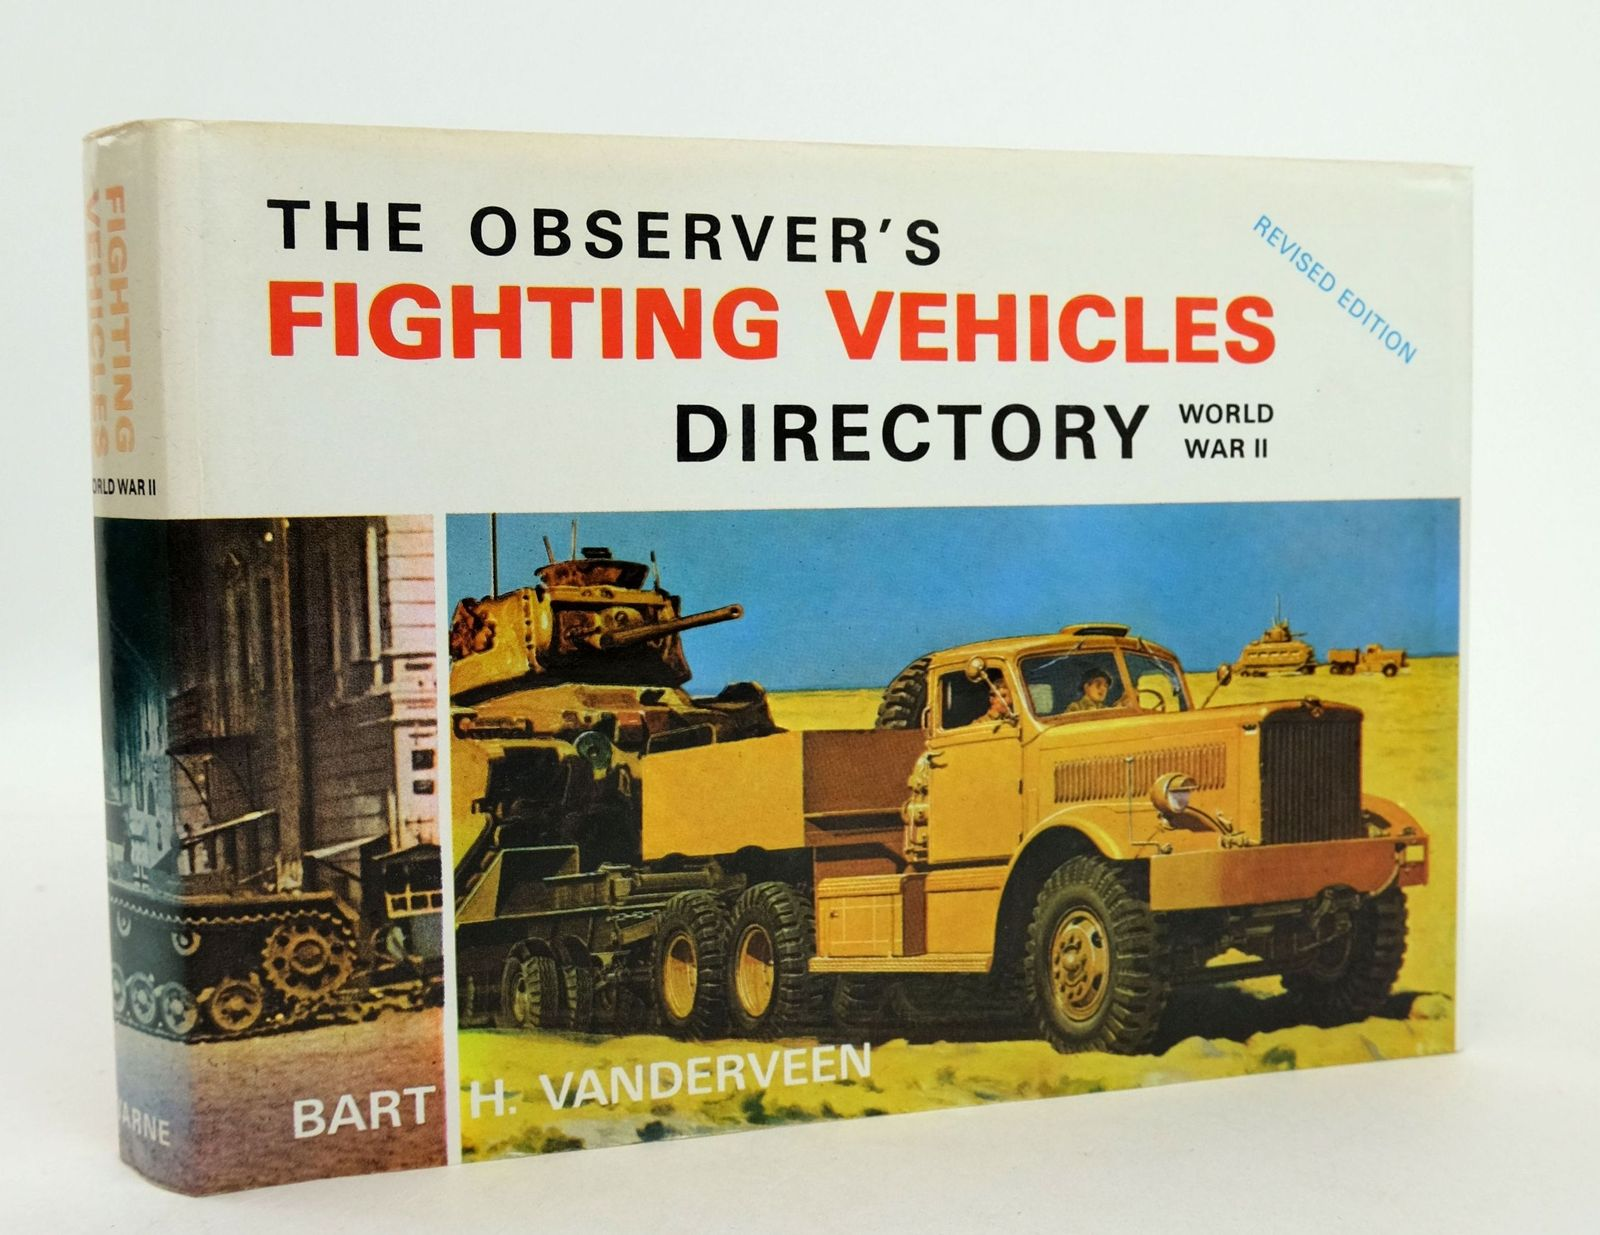 Photo of THE OBSERVER'S FIGHTING VEHICLES DIRECTORY WORLD WAR II written by Vanderveen, Bart H. published by Frederick Warne & Co Ltd. (STOCK CODE: 1819245)  for sale by Stella & Rose's Books